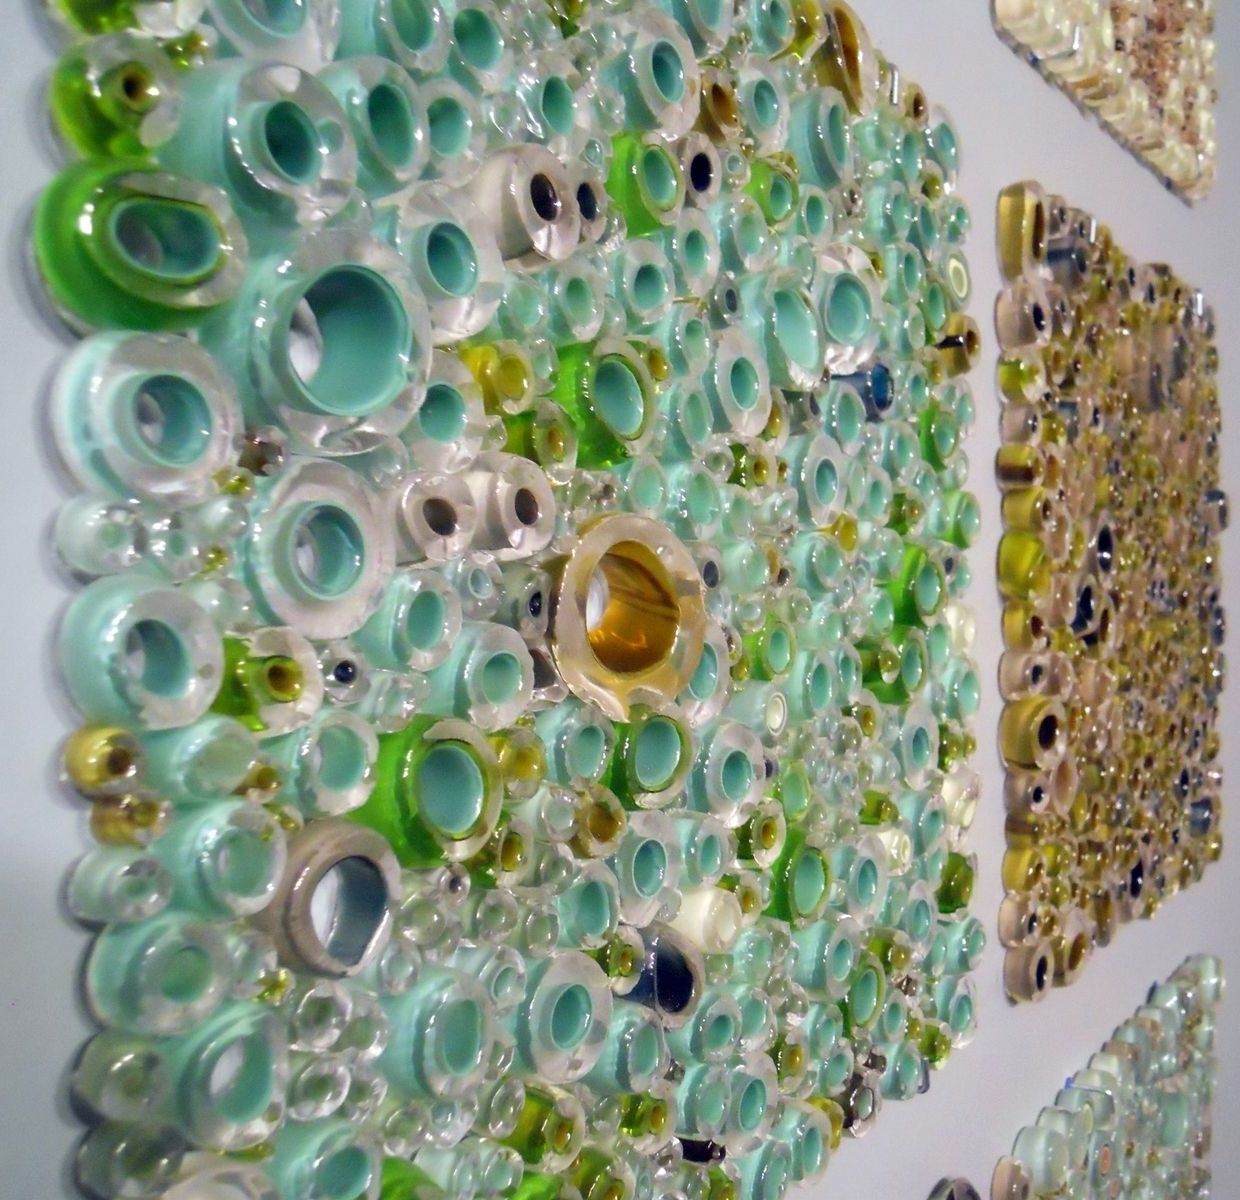 Trendy Handmade Glass Wall Panel Art Work, Fused Tubing Serieswolf With Glass Wall Art Panels (View 13 of 15)